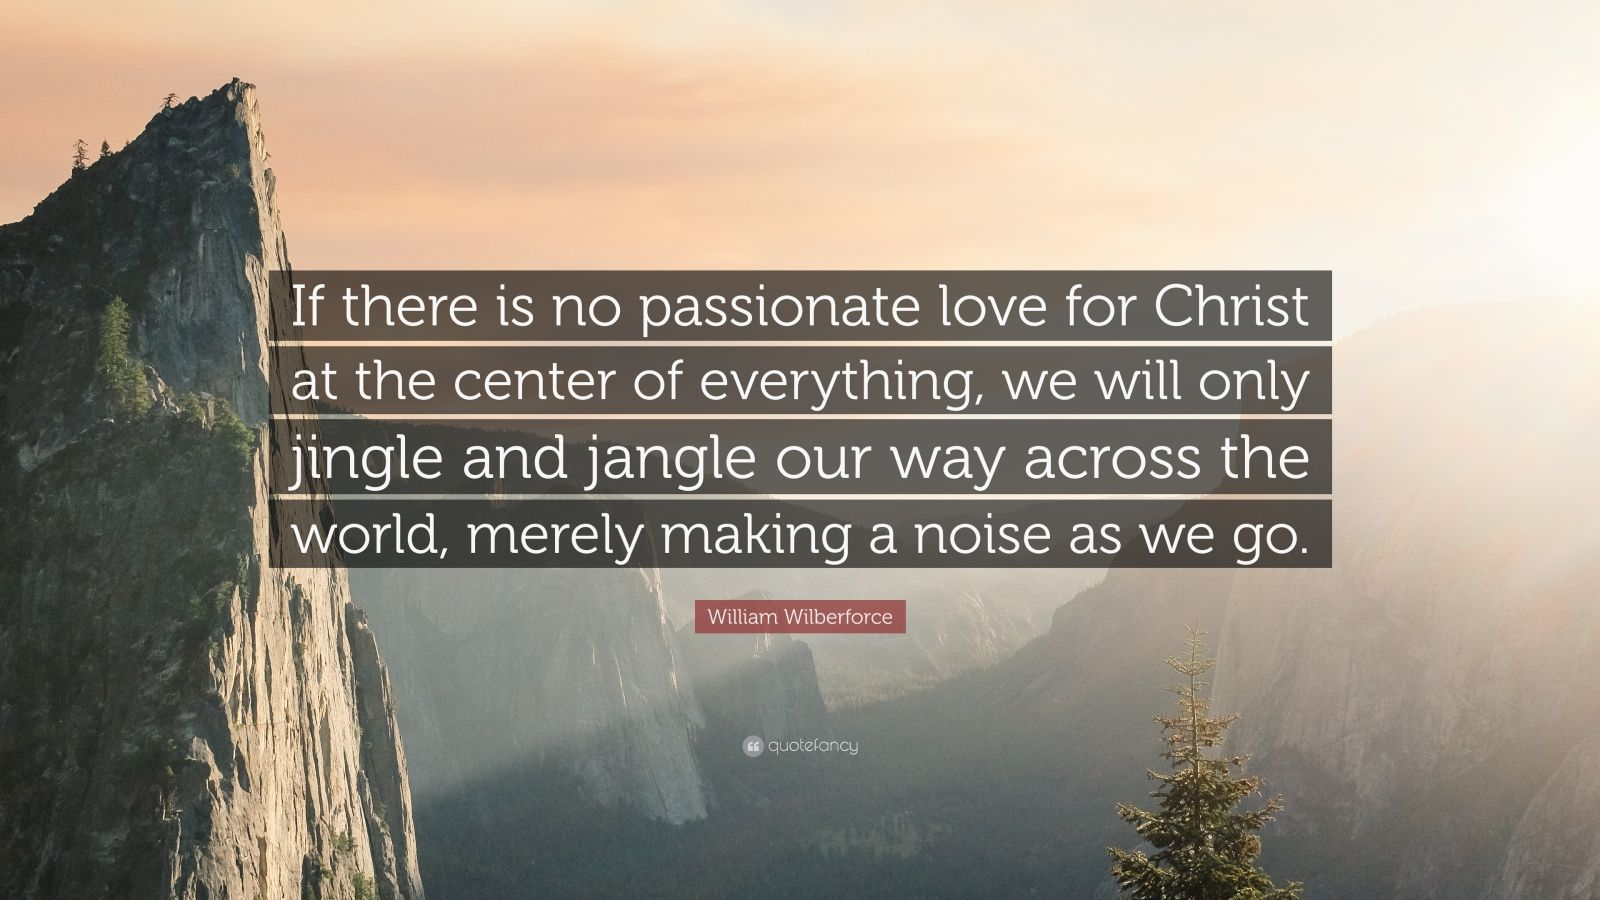 """William Wilberforce Quote: """"If there is no passionate love for Christ at the center of everything, we will only jingle and jangle our way across the world, merely making a noise as we go."""""""